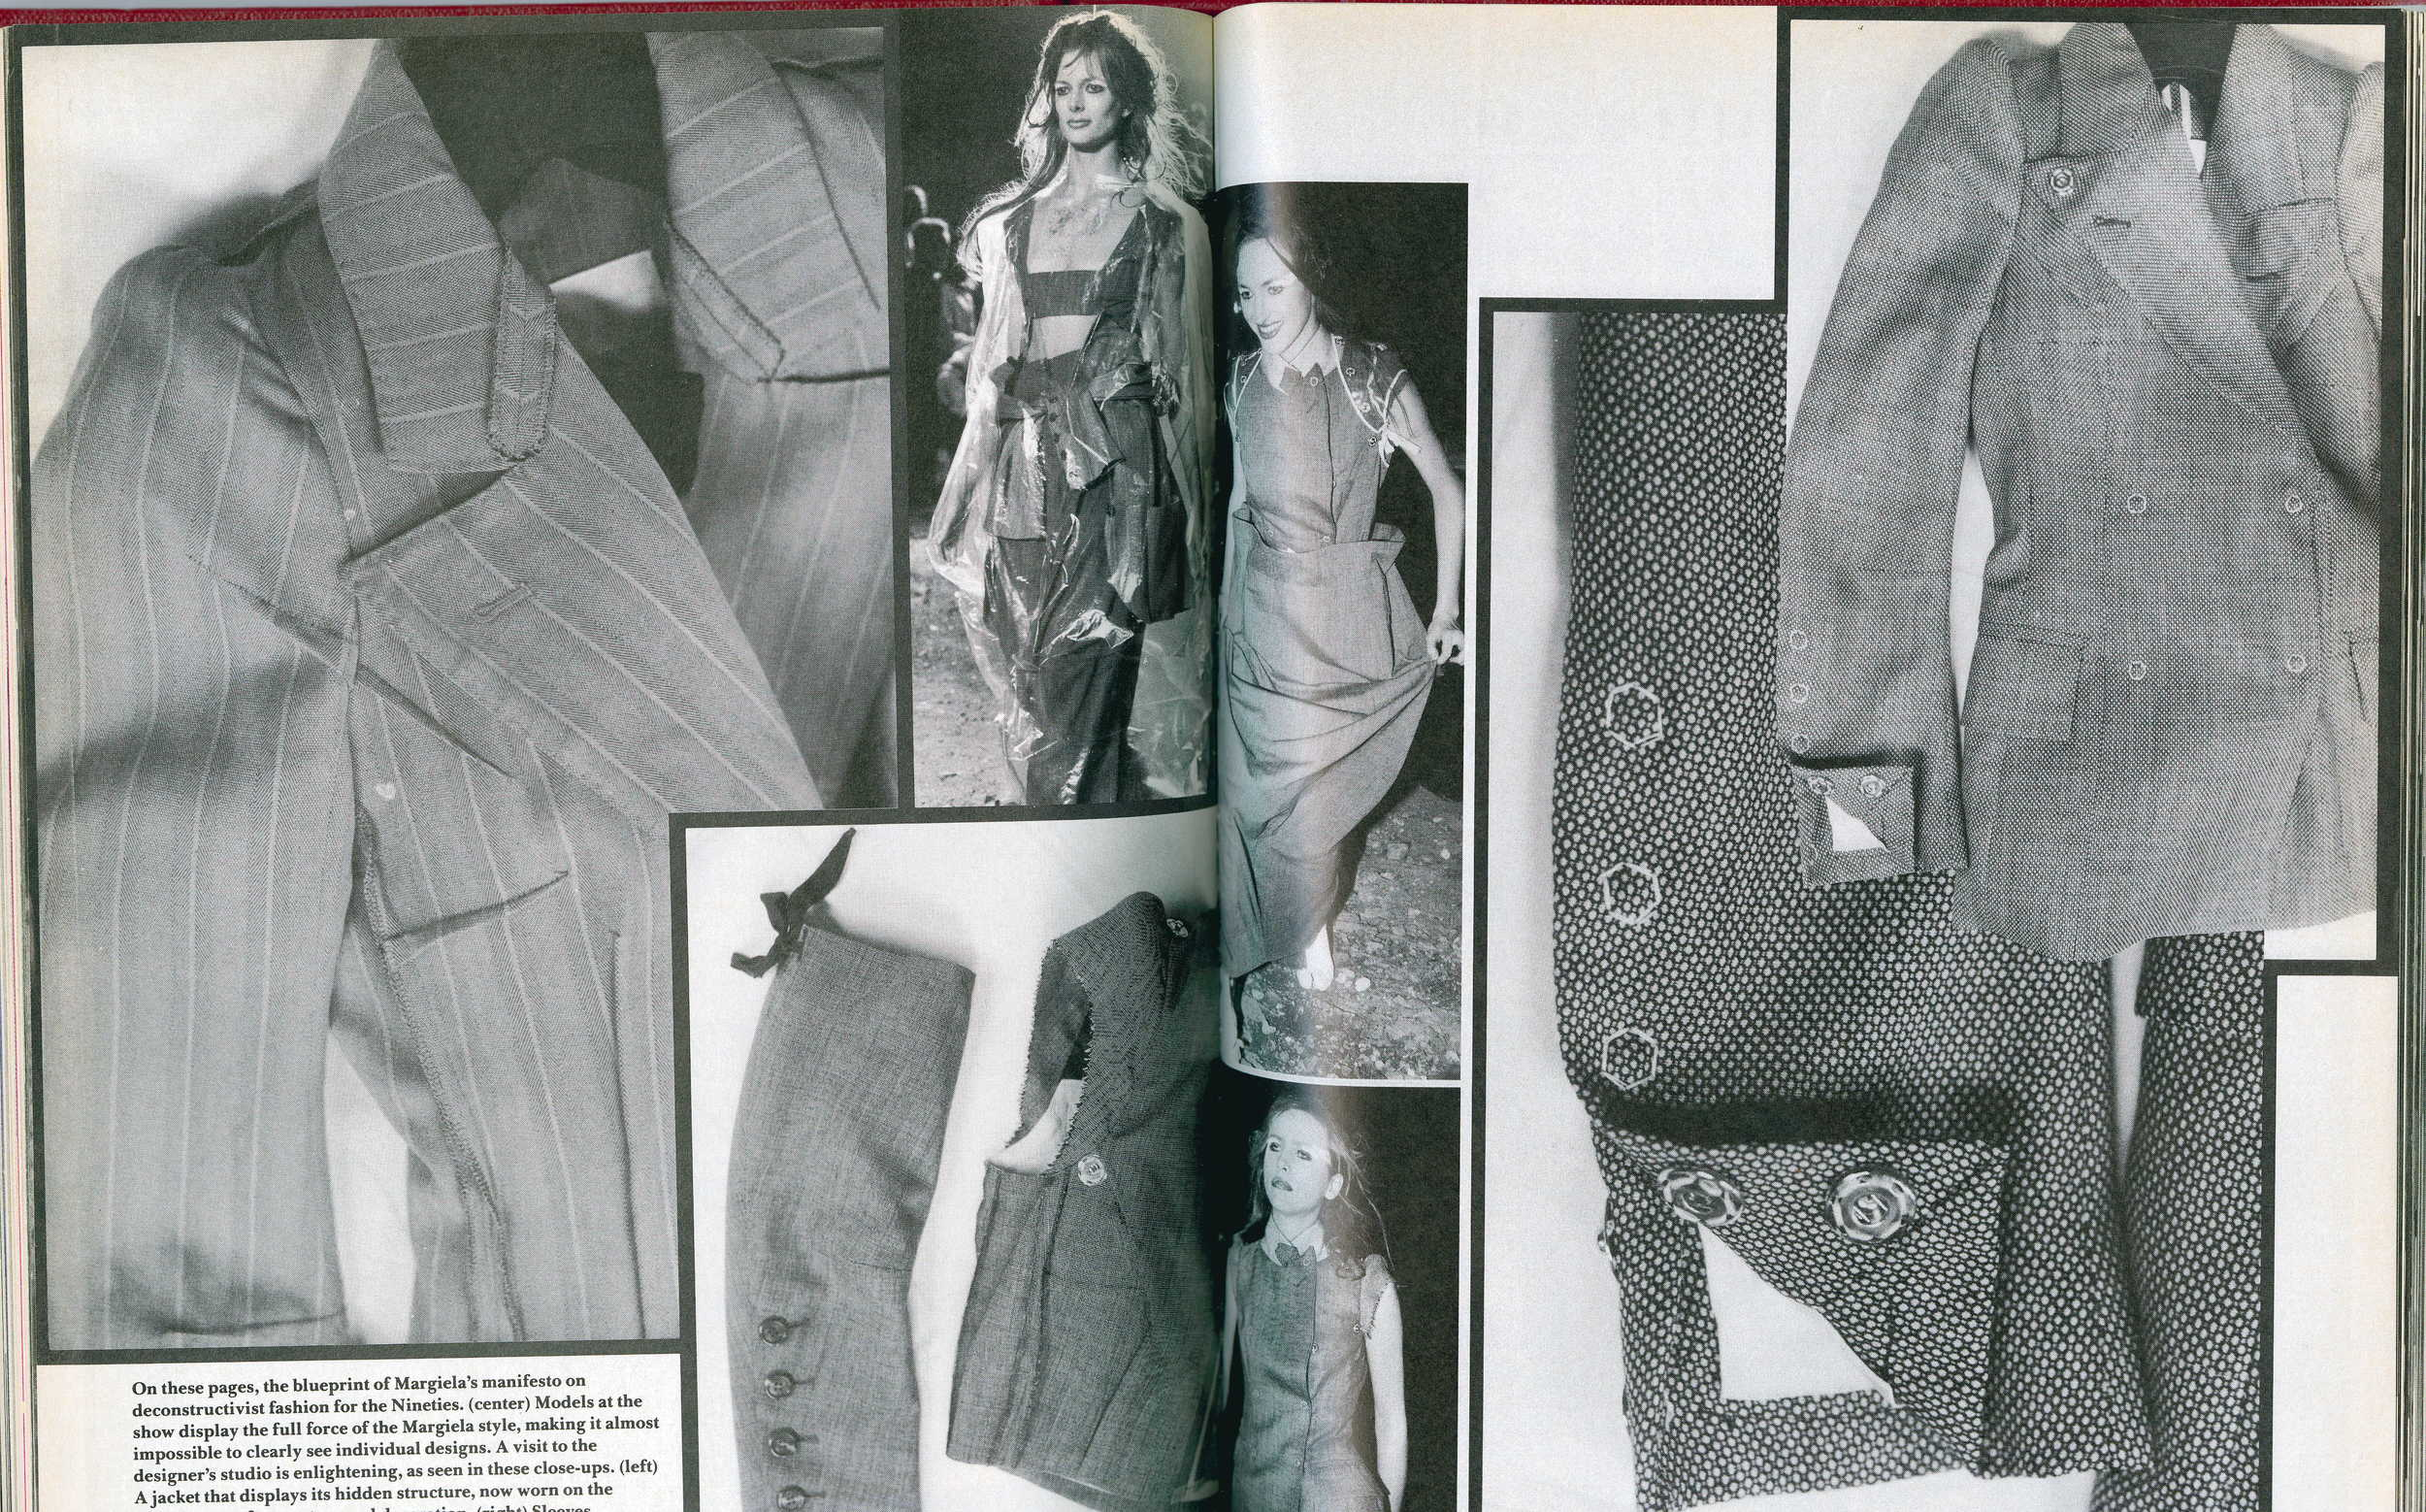 BILL CUNNINGHAM, IMAGES AND TEXT On MARTIN MARGIELA, SPRINg/SUMMER 1990,  DETails,  MARCH 1990